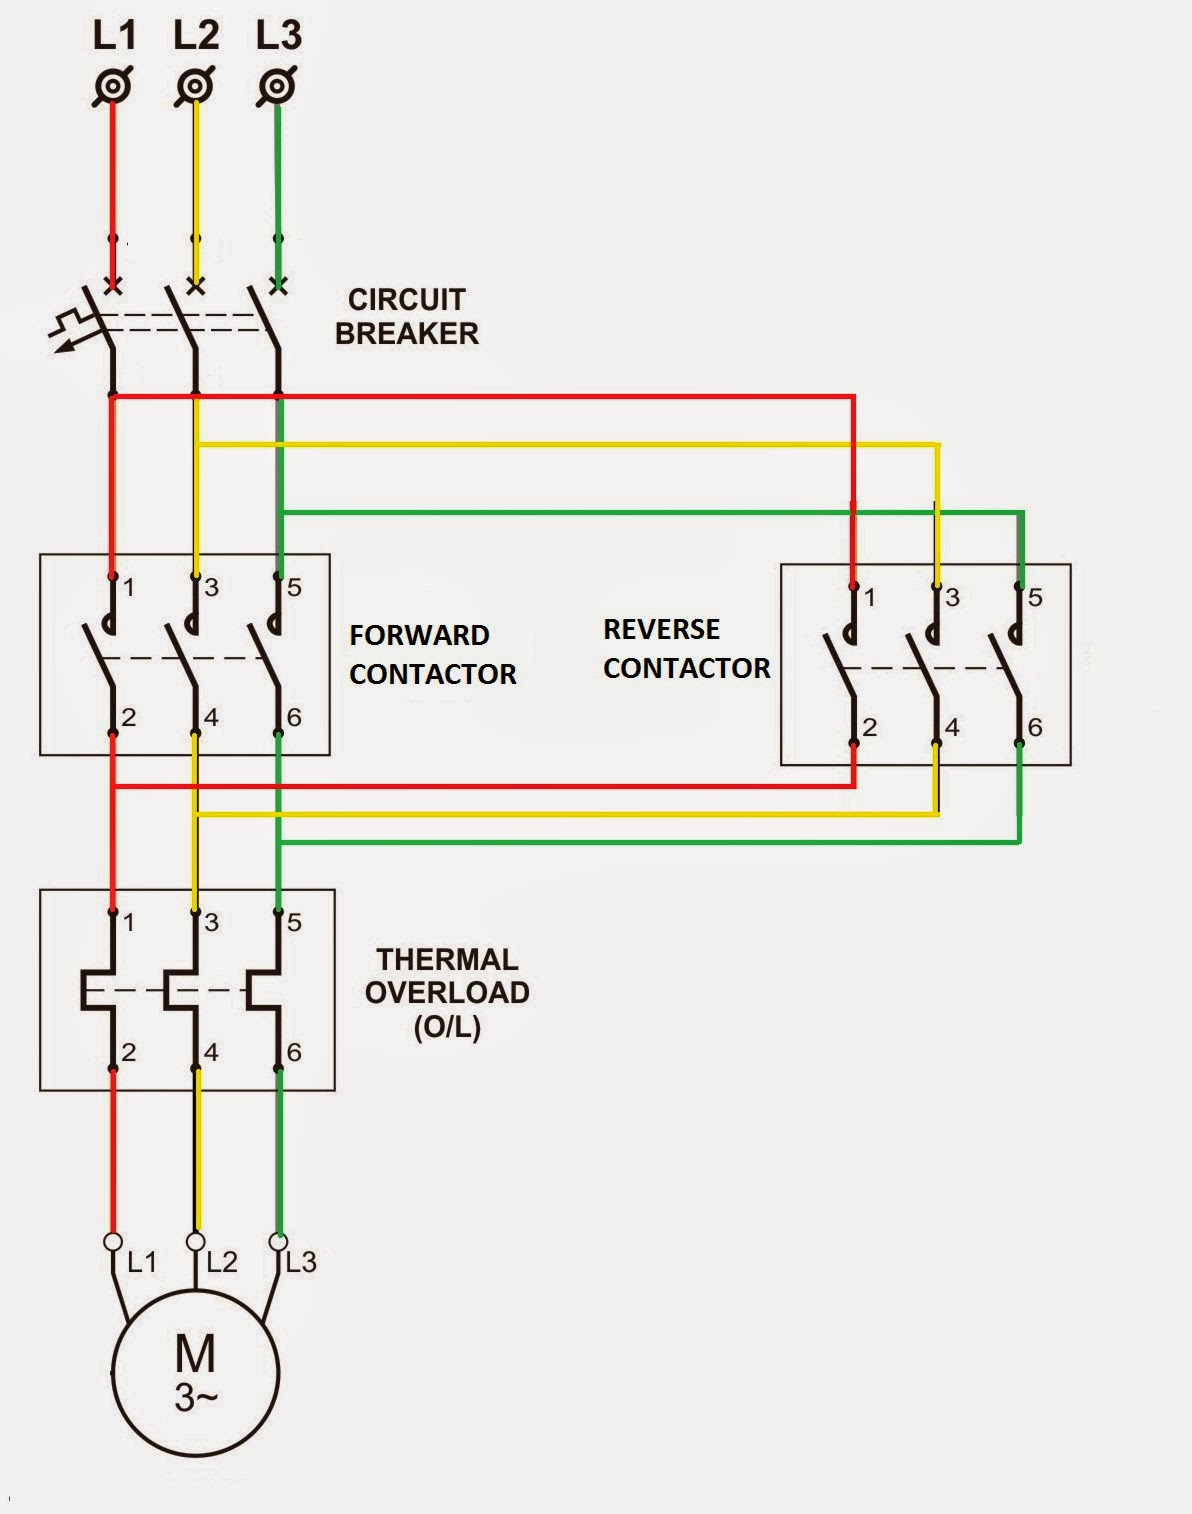 overload relay working principle and features of thermal motorabove diagrams shows where overload is connected in motor circuit you may see that in control circuit overload relay comes first in line but in power